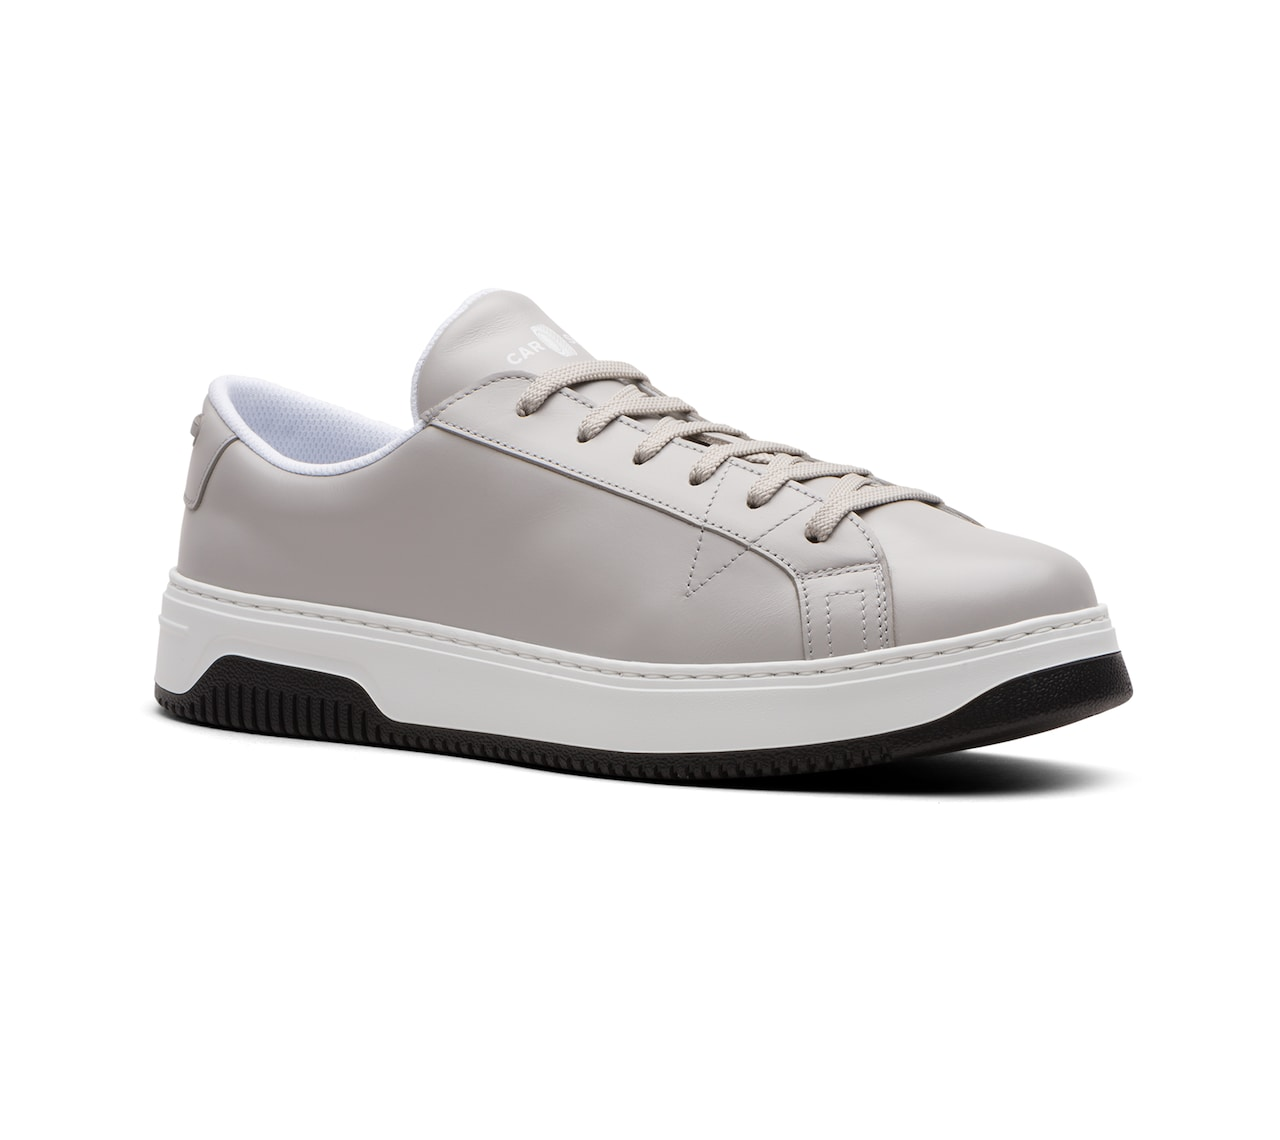 SOFT LEATHER SNEAKERS GREY